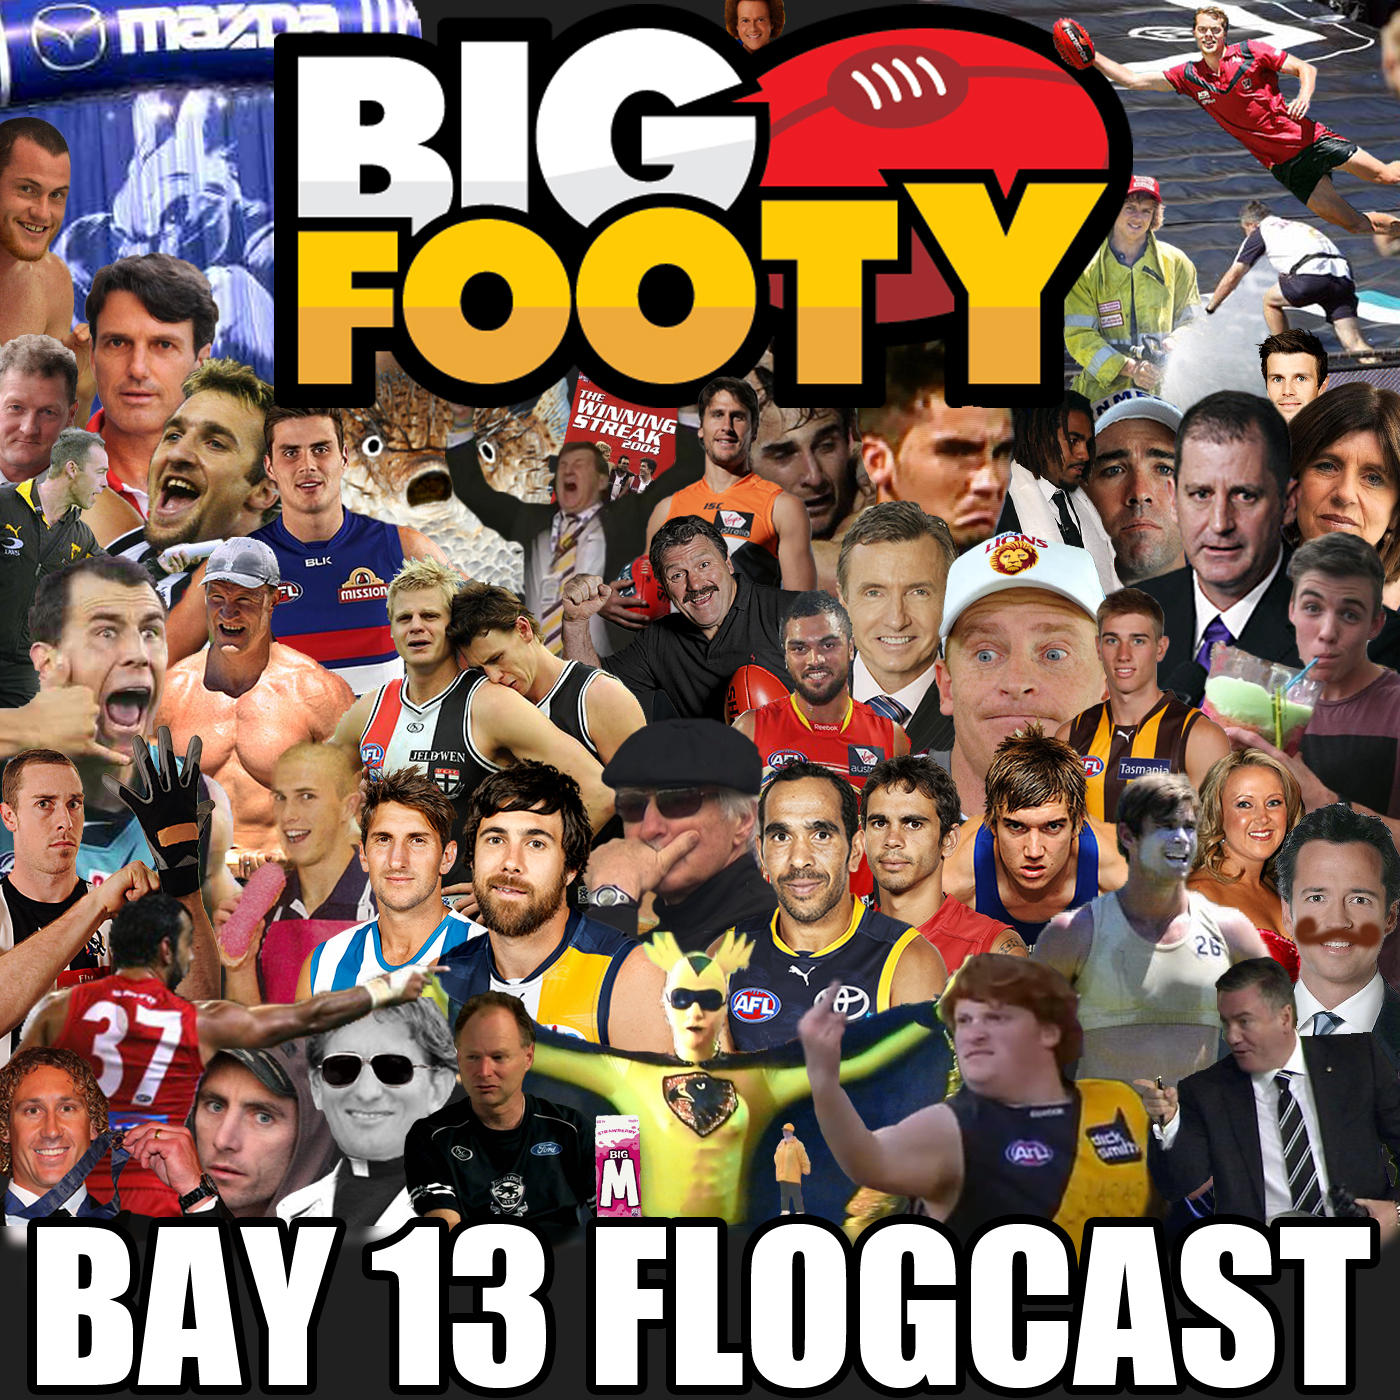 The Bay 13 Flogcast from BigFooty.com